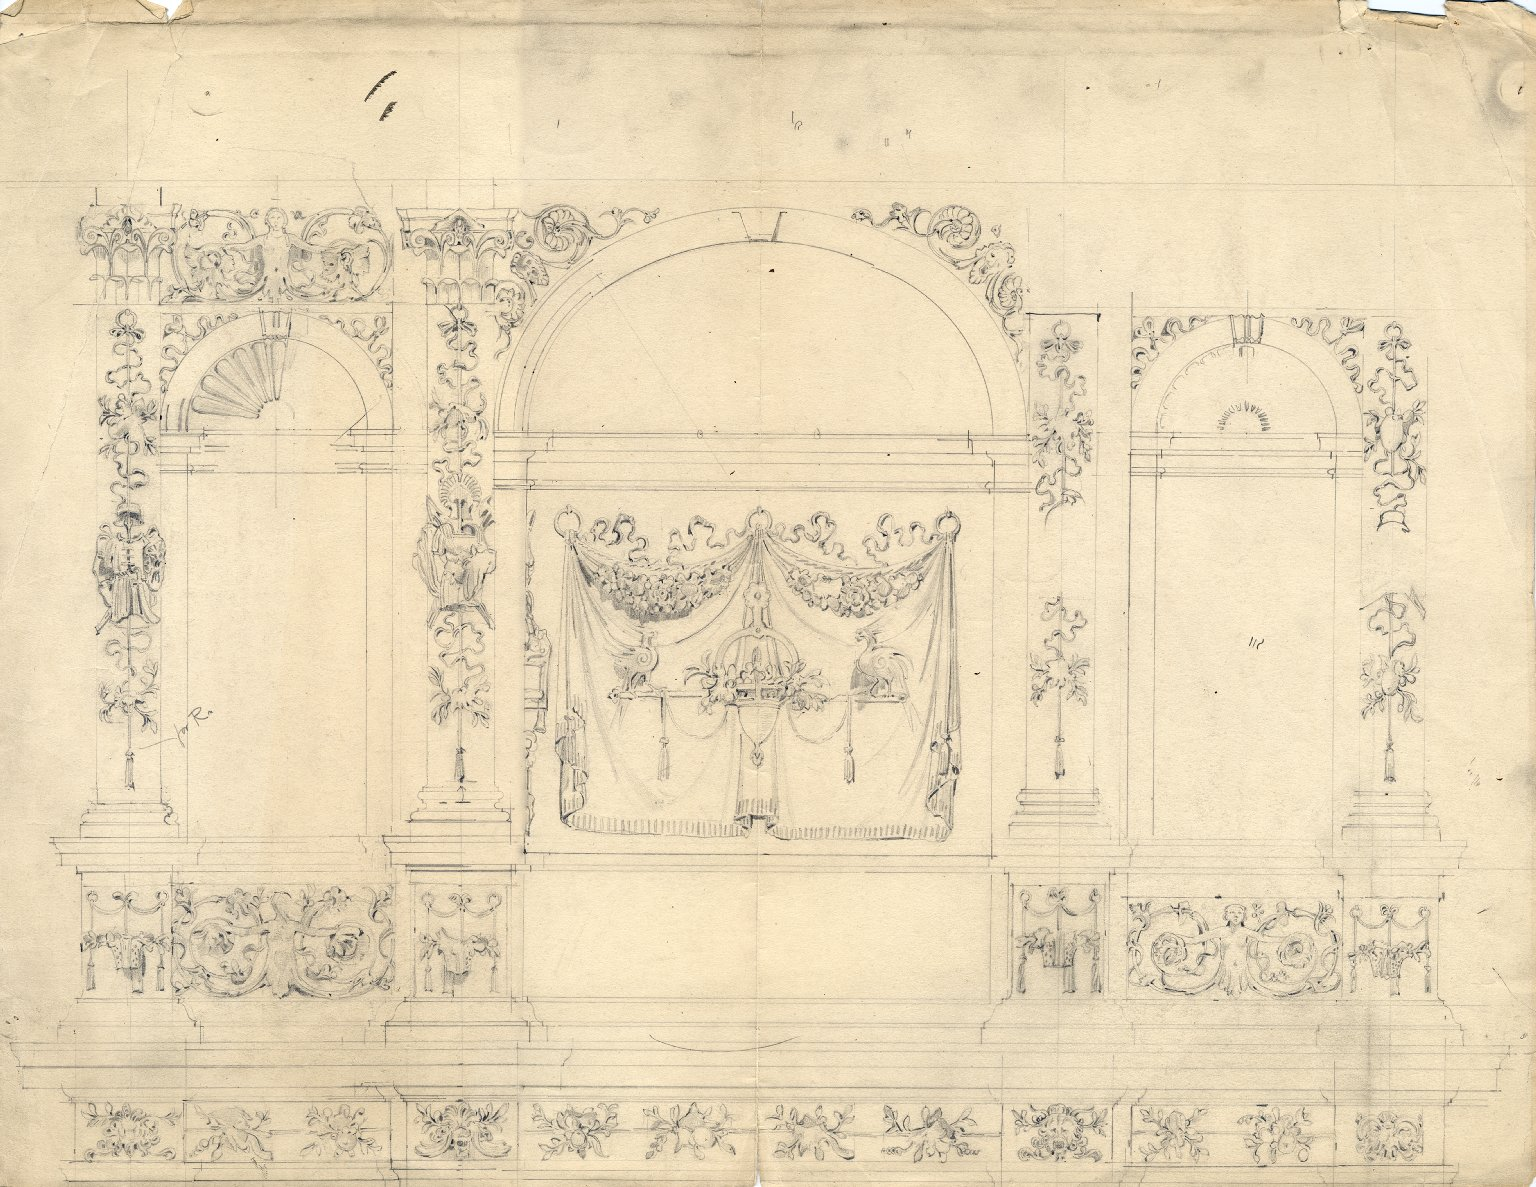 Architectural design, possibly from Monument of the Count de Borgnival of Belgium